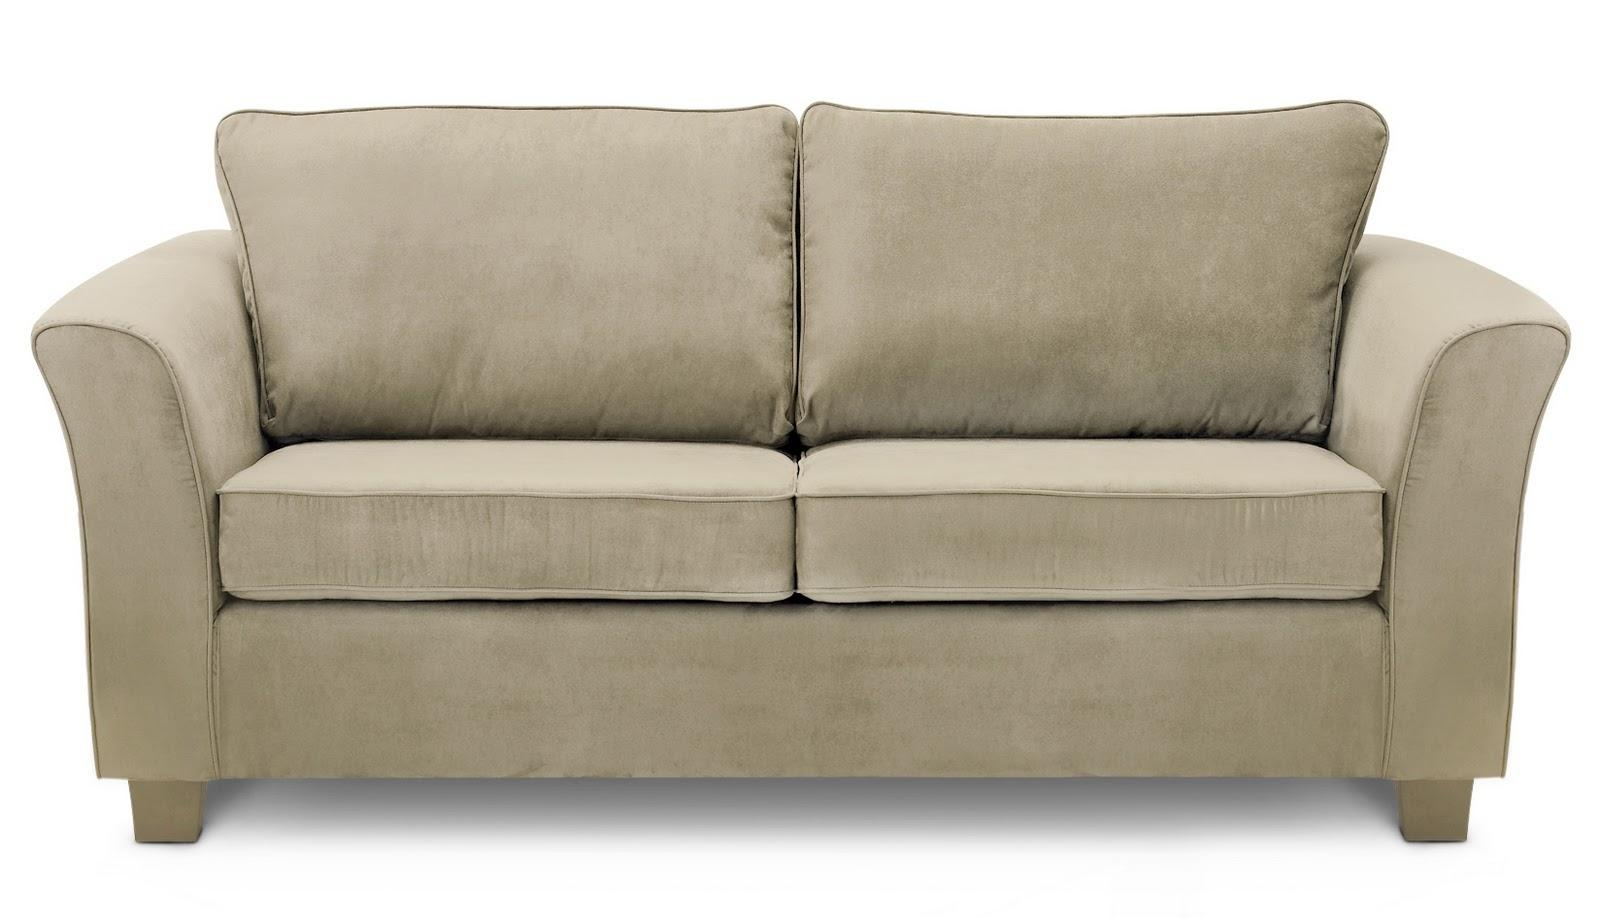 Sofa : Awesome Sofas For Cheap Sale Excellent Home Design Cool In Within Cool Cheap Sofas (Photo 19 of 20)